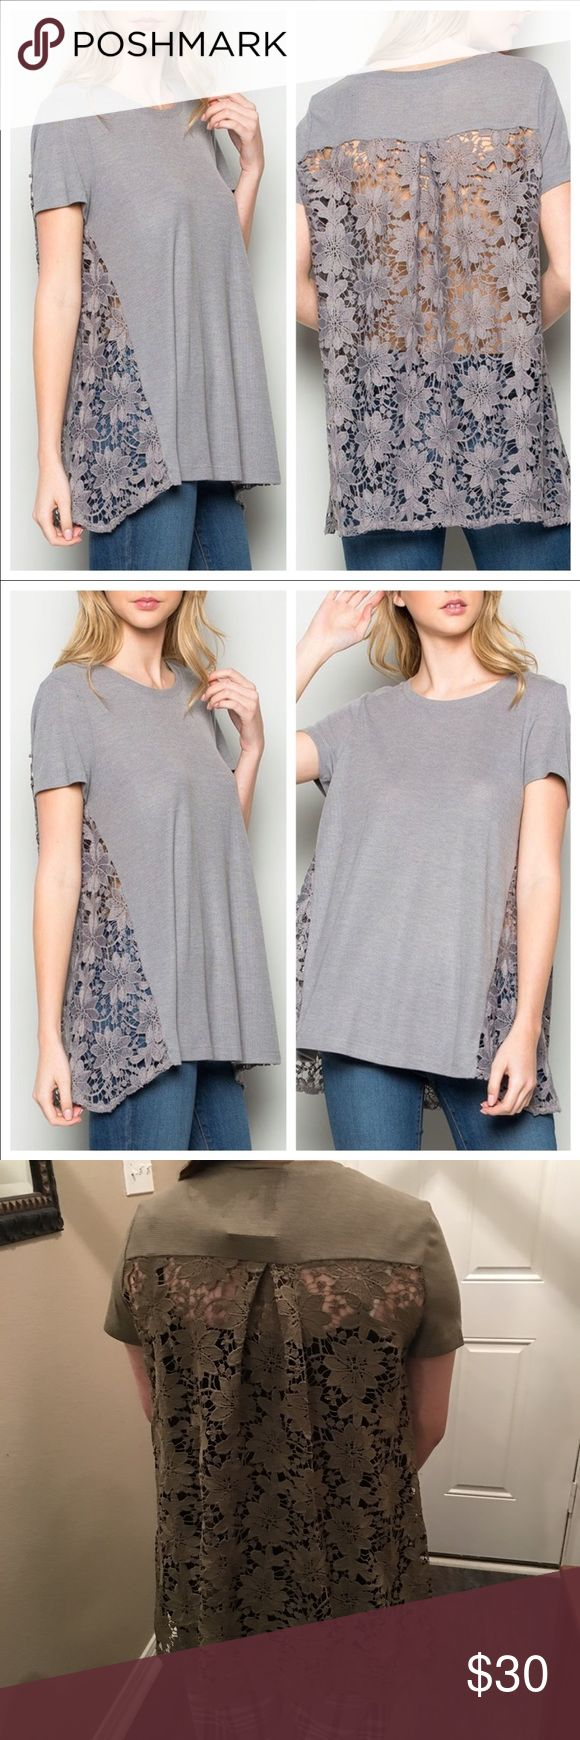 Floral back lace top. Feminine touch 🌱❣️ This one is everything too. So pretty on. I have the model in bottom pics showing the olive with bad girl leggings layered with tank underneath and wedge sandals. Price is for one shirt only. Smoke and pet free. Bundle up ladies. Grey or Olive. Both gorgeous. October Love Tops